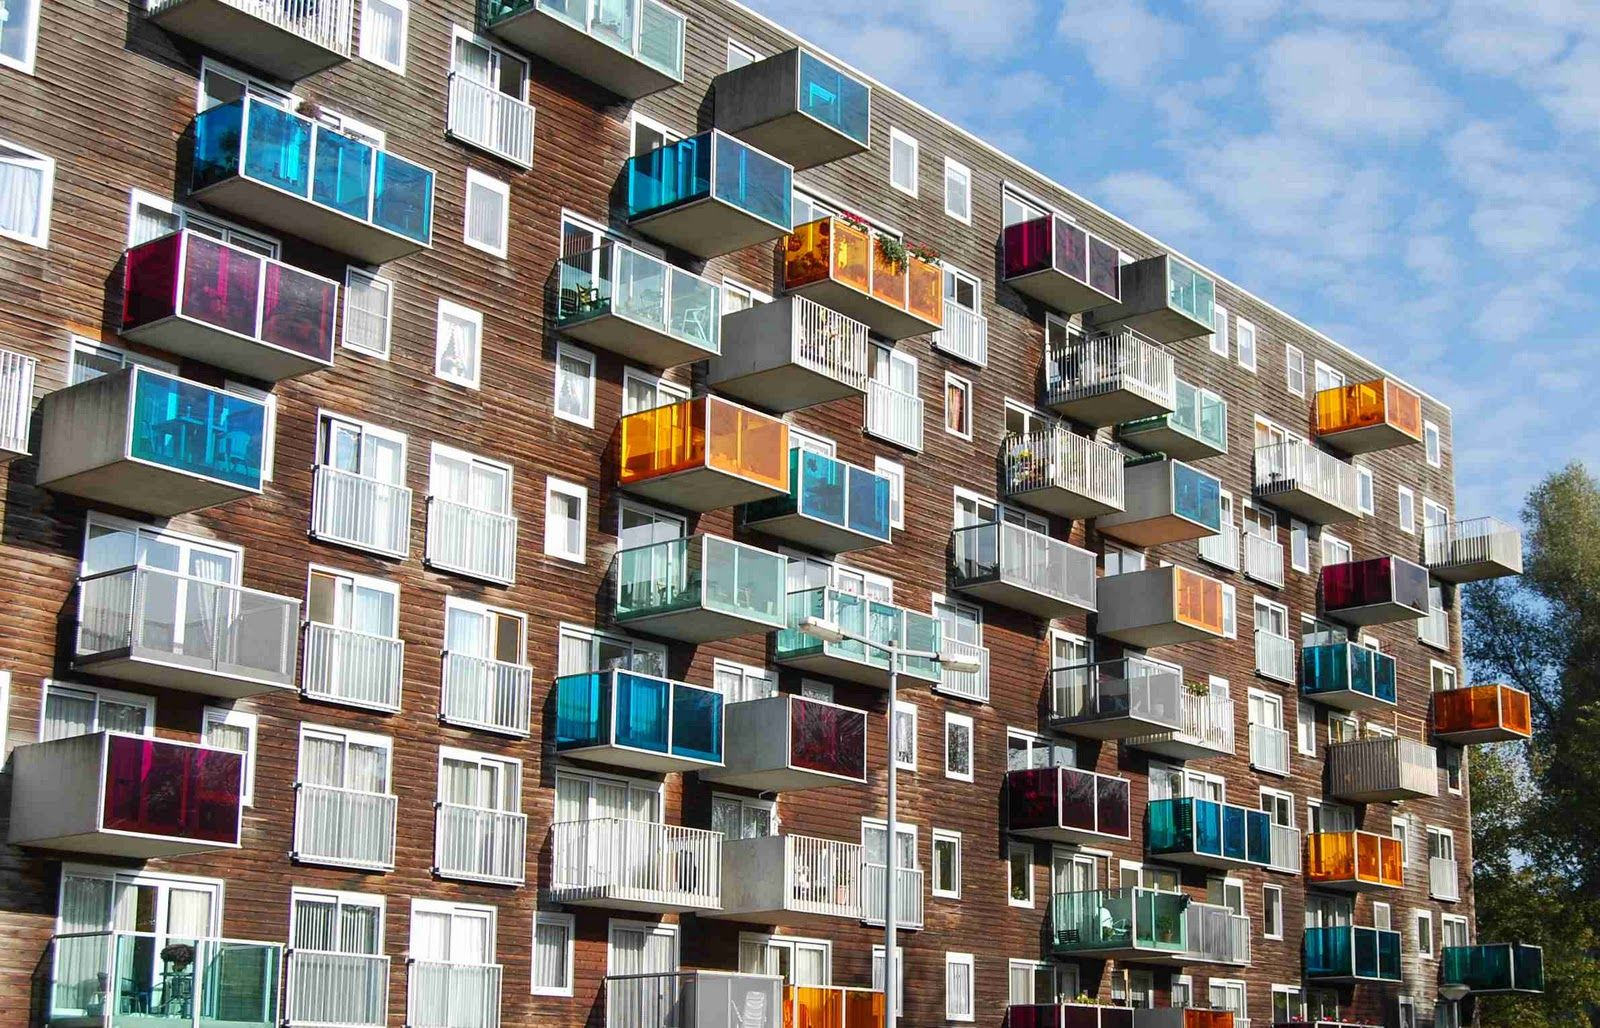 Mvrdv wozoco netherlands buildings pinterest for Low cost apartments amsterdam